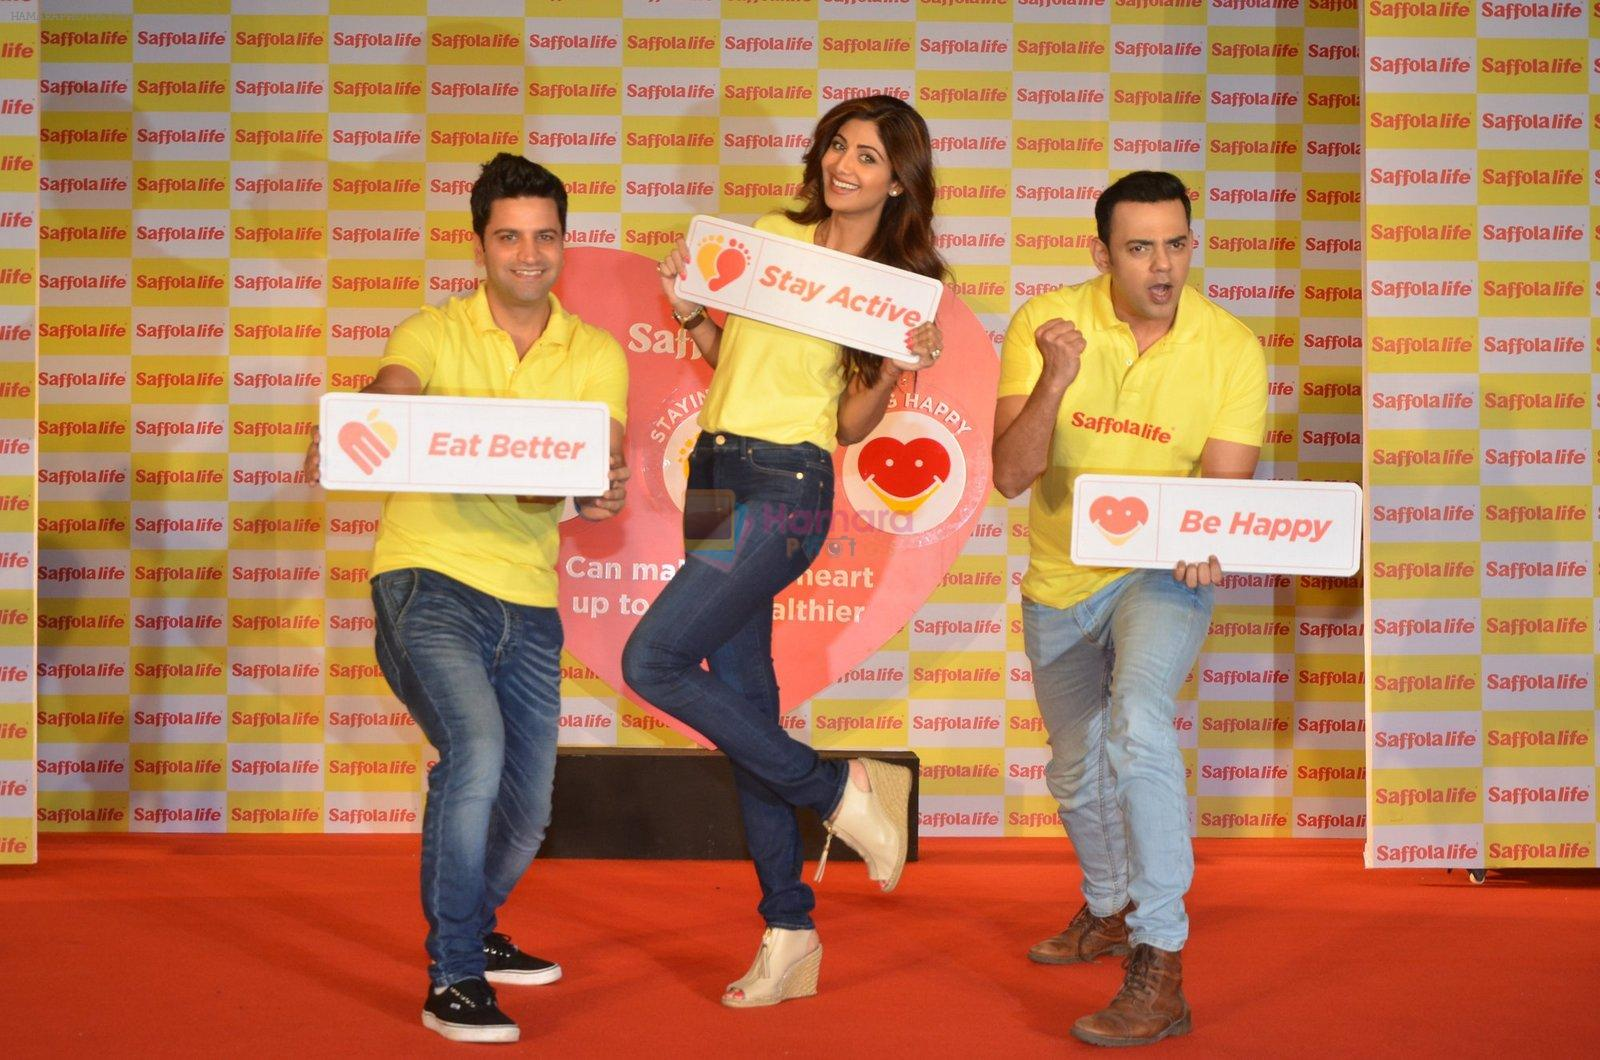 Shilpa Shetty, Kunal Kapur, Cyrus Sahukar during the World Heart Day program organized by Saffola Life in Mumbai on 28th Sept 2016